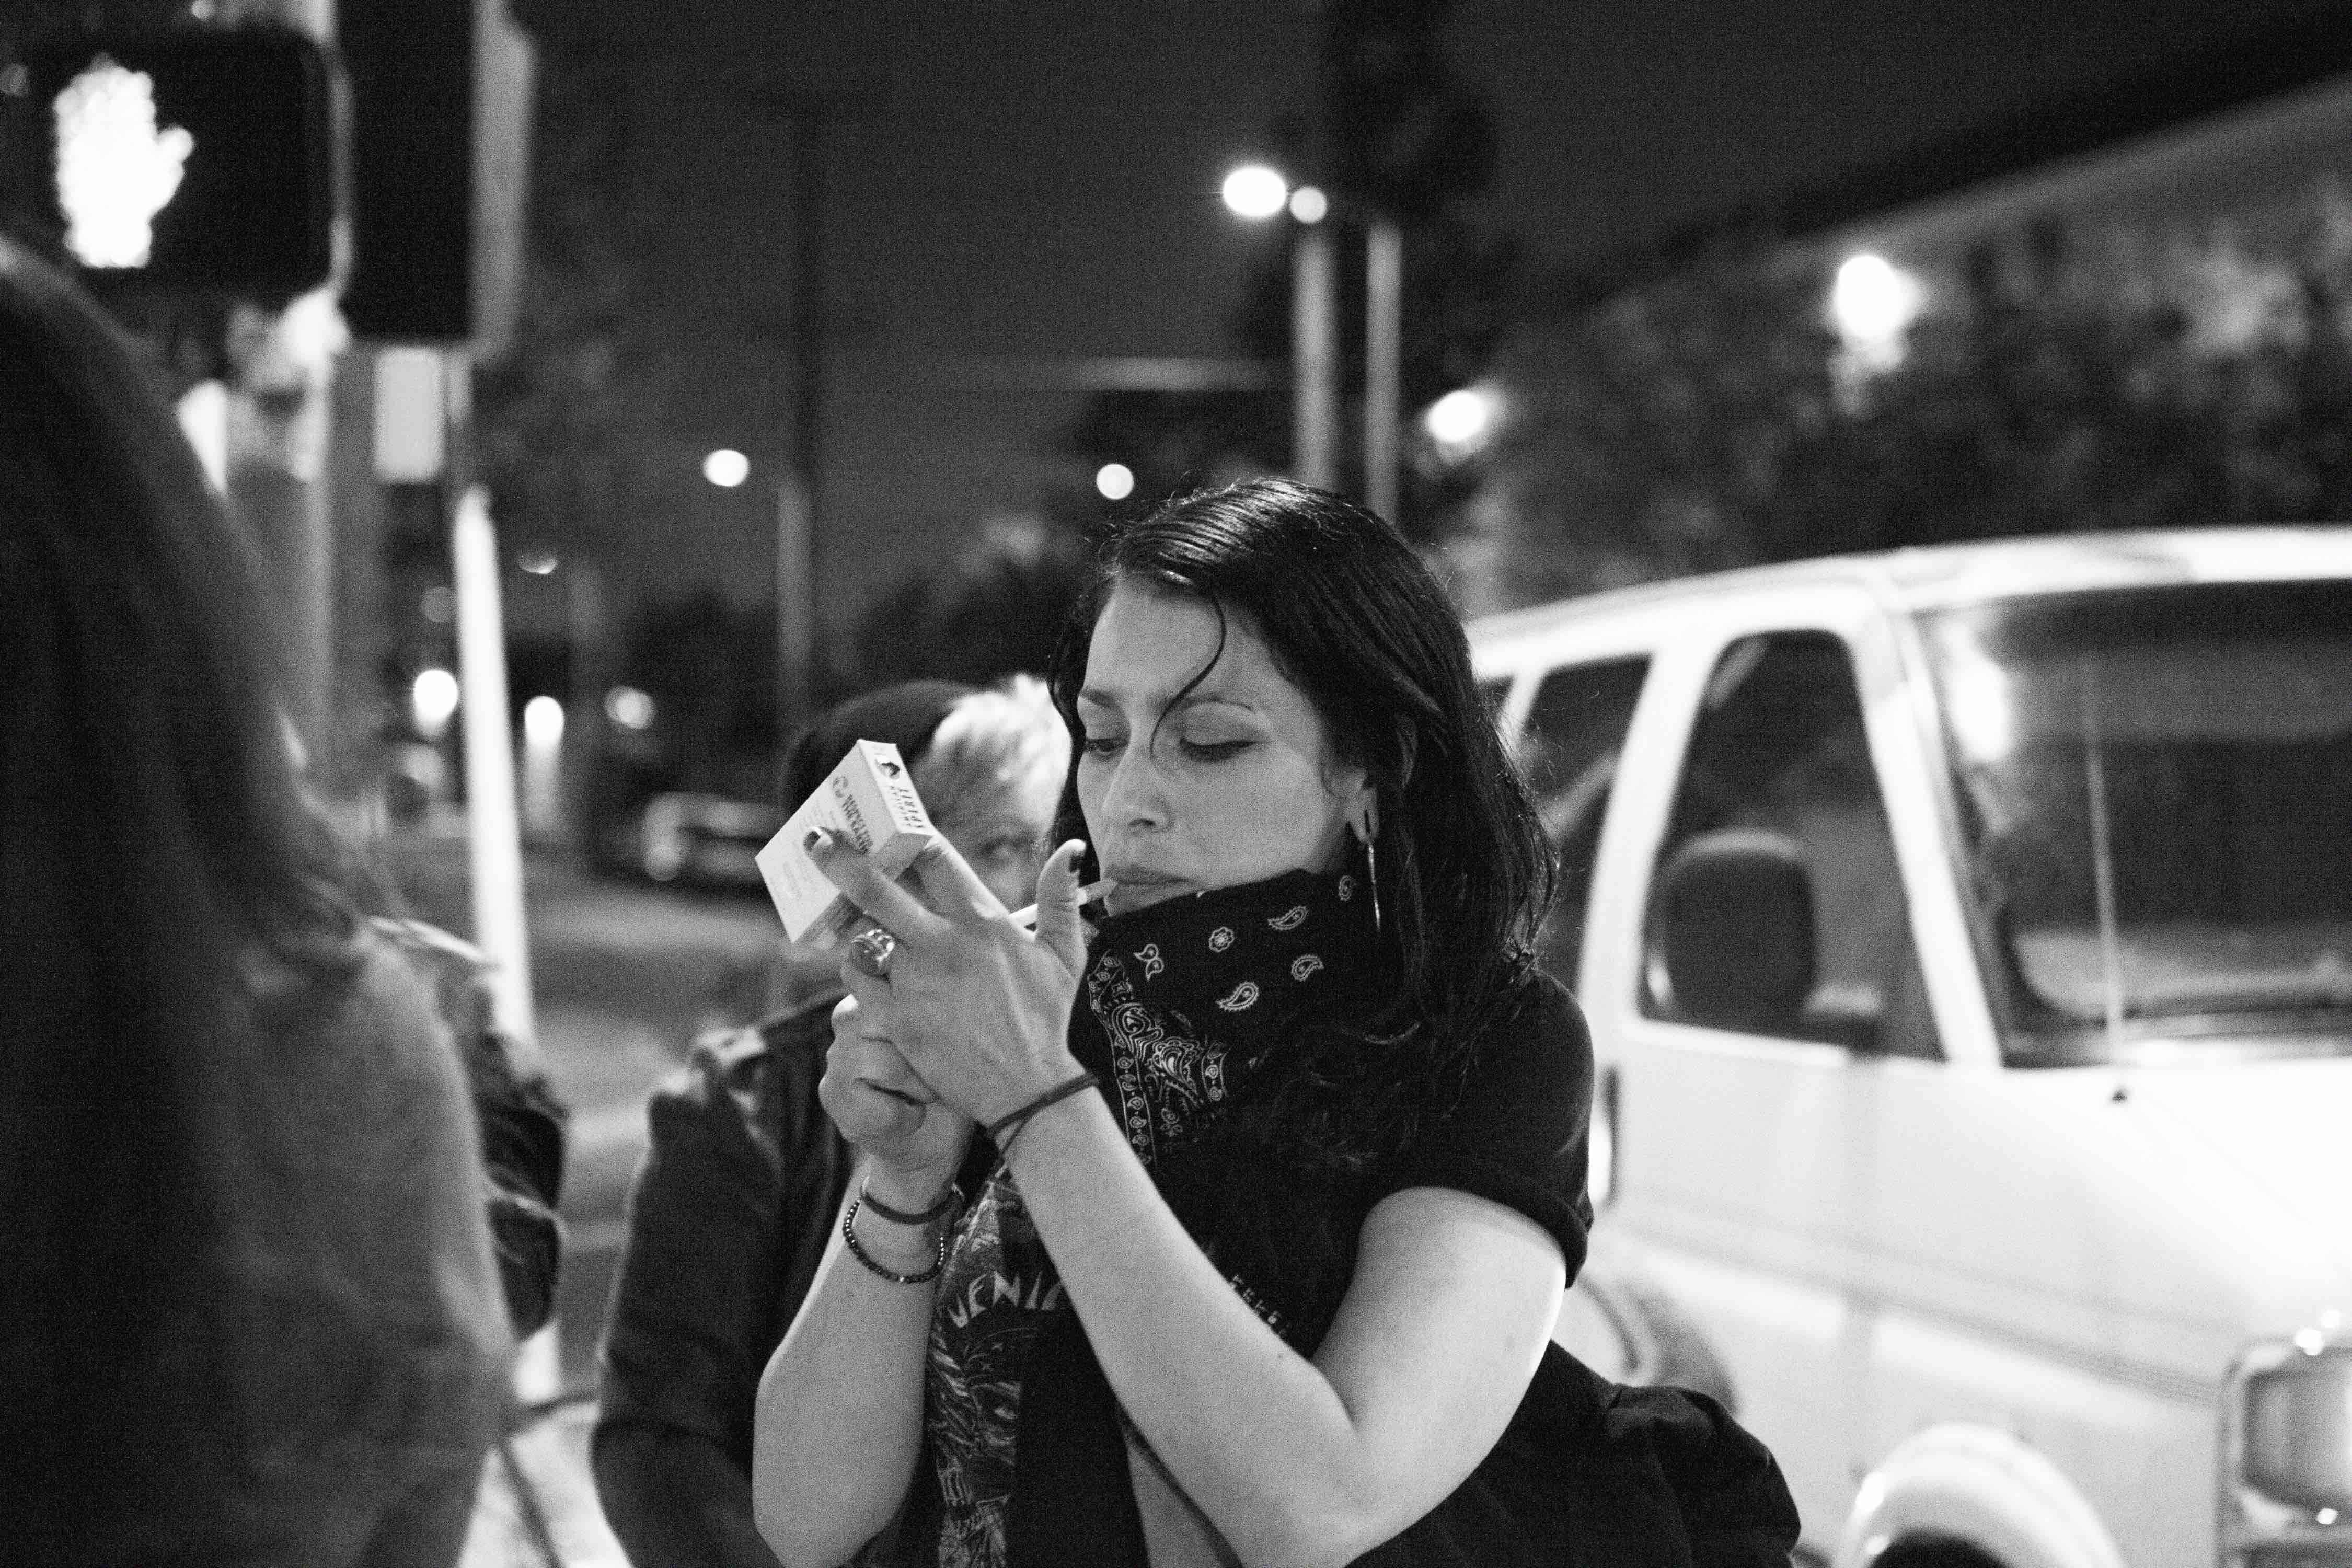 Xela De La X, founder of the collective, sparks up at a recent meet in Downtown LA